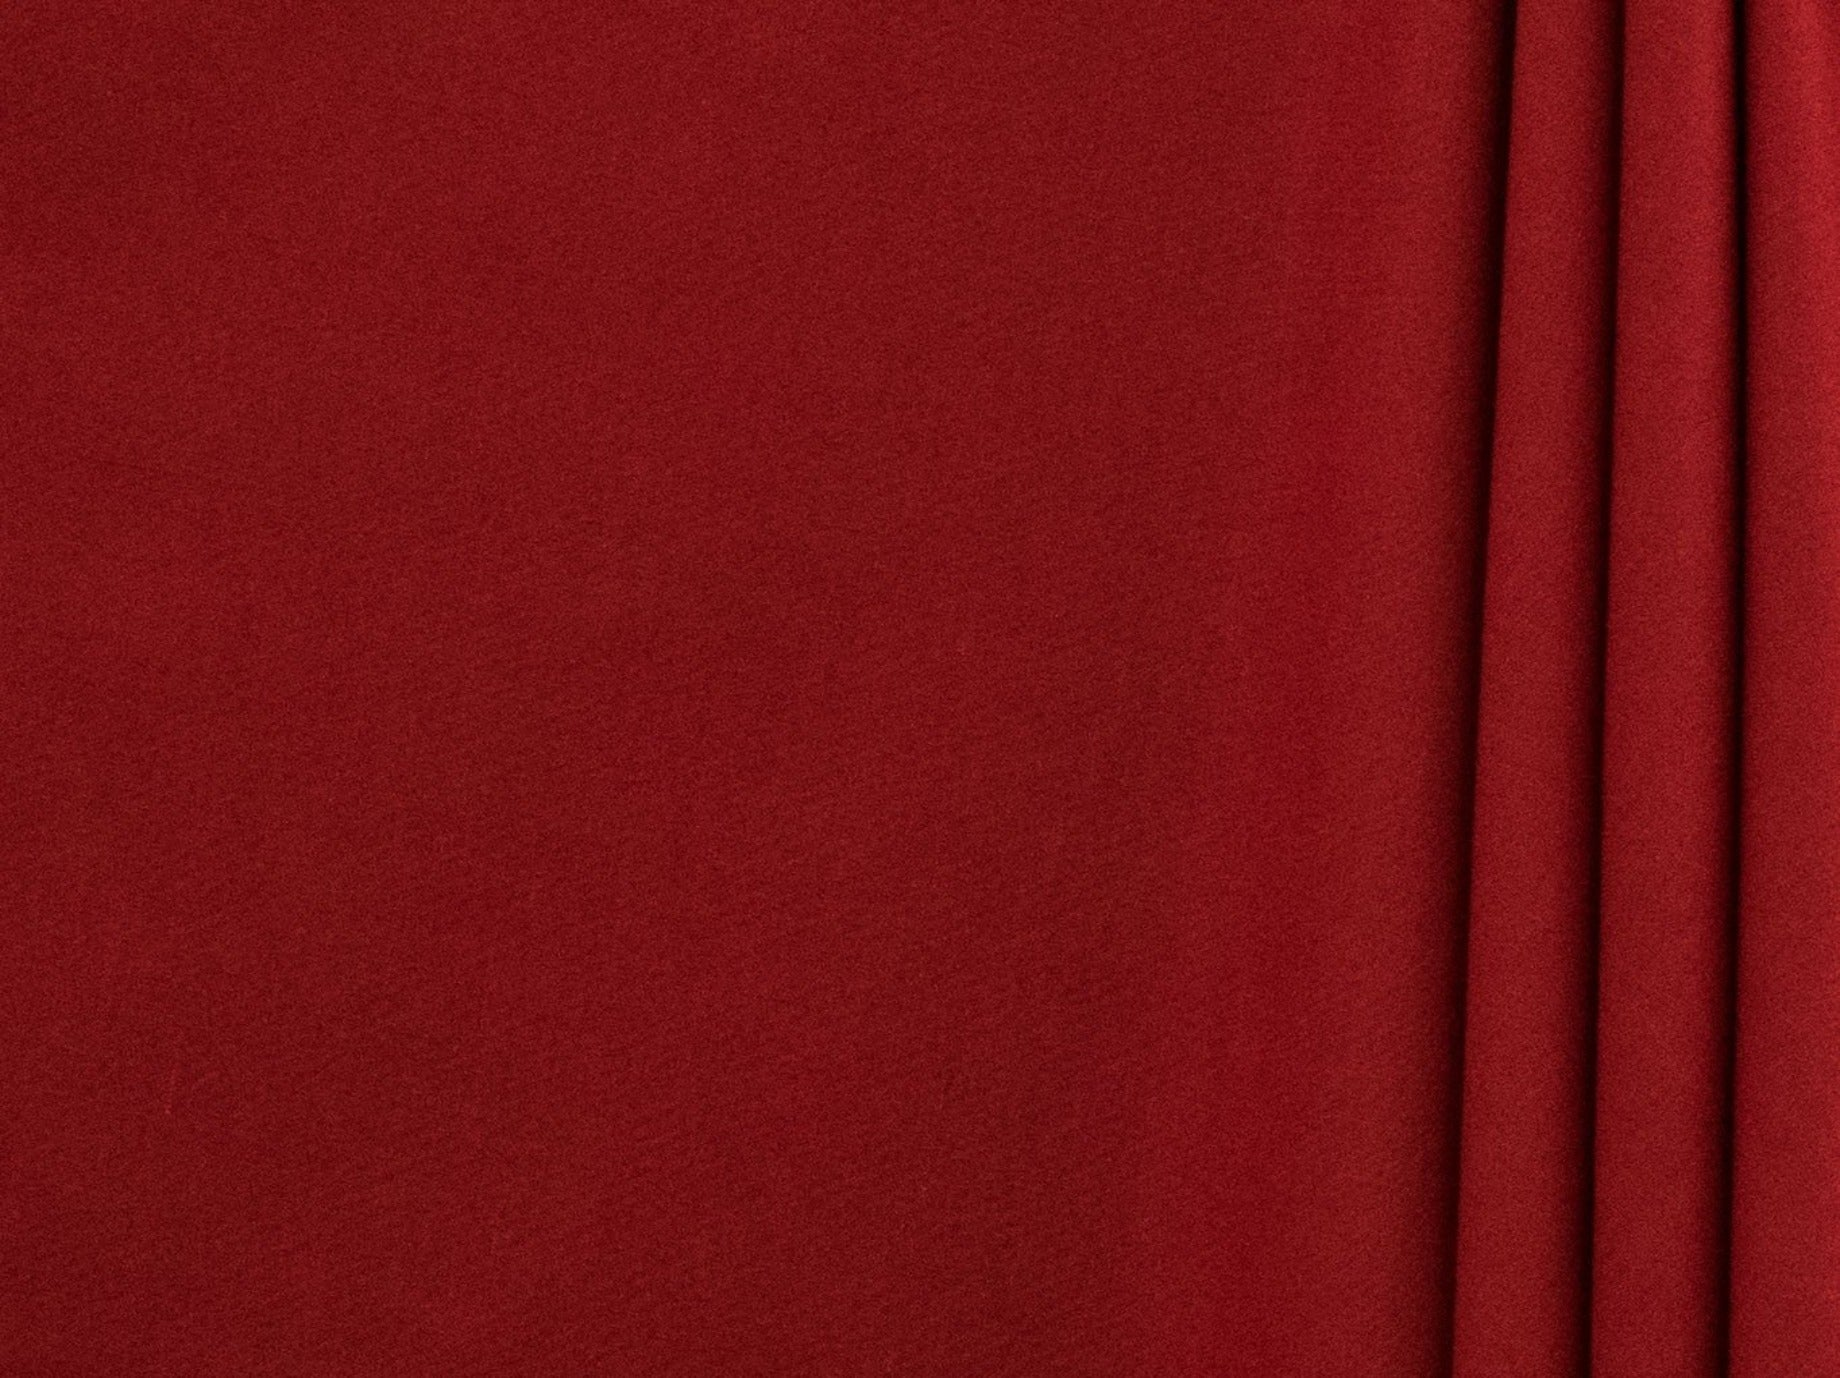 240cm T144 PLAIN SHEETING  RED